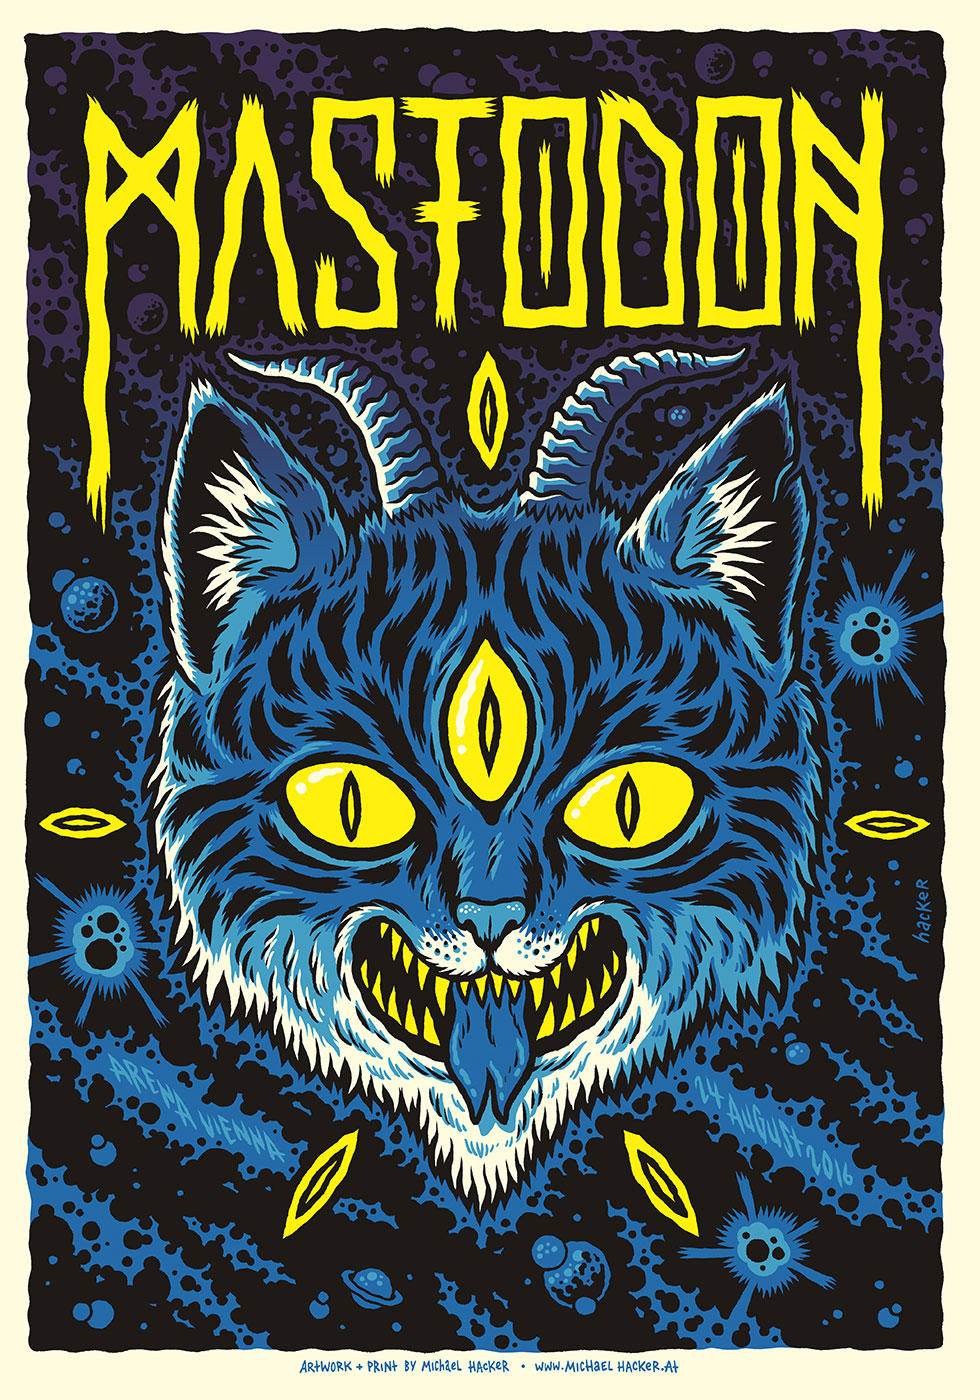 Mastodon Arena Vienna gig poster by Michael Hacker